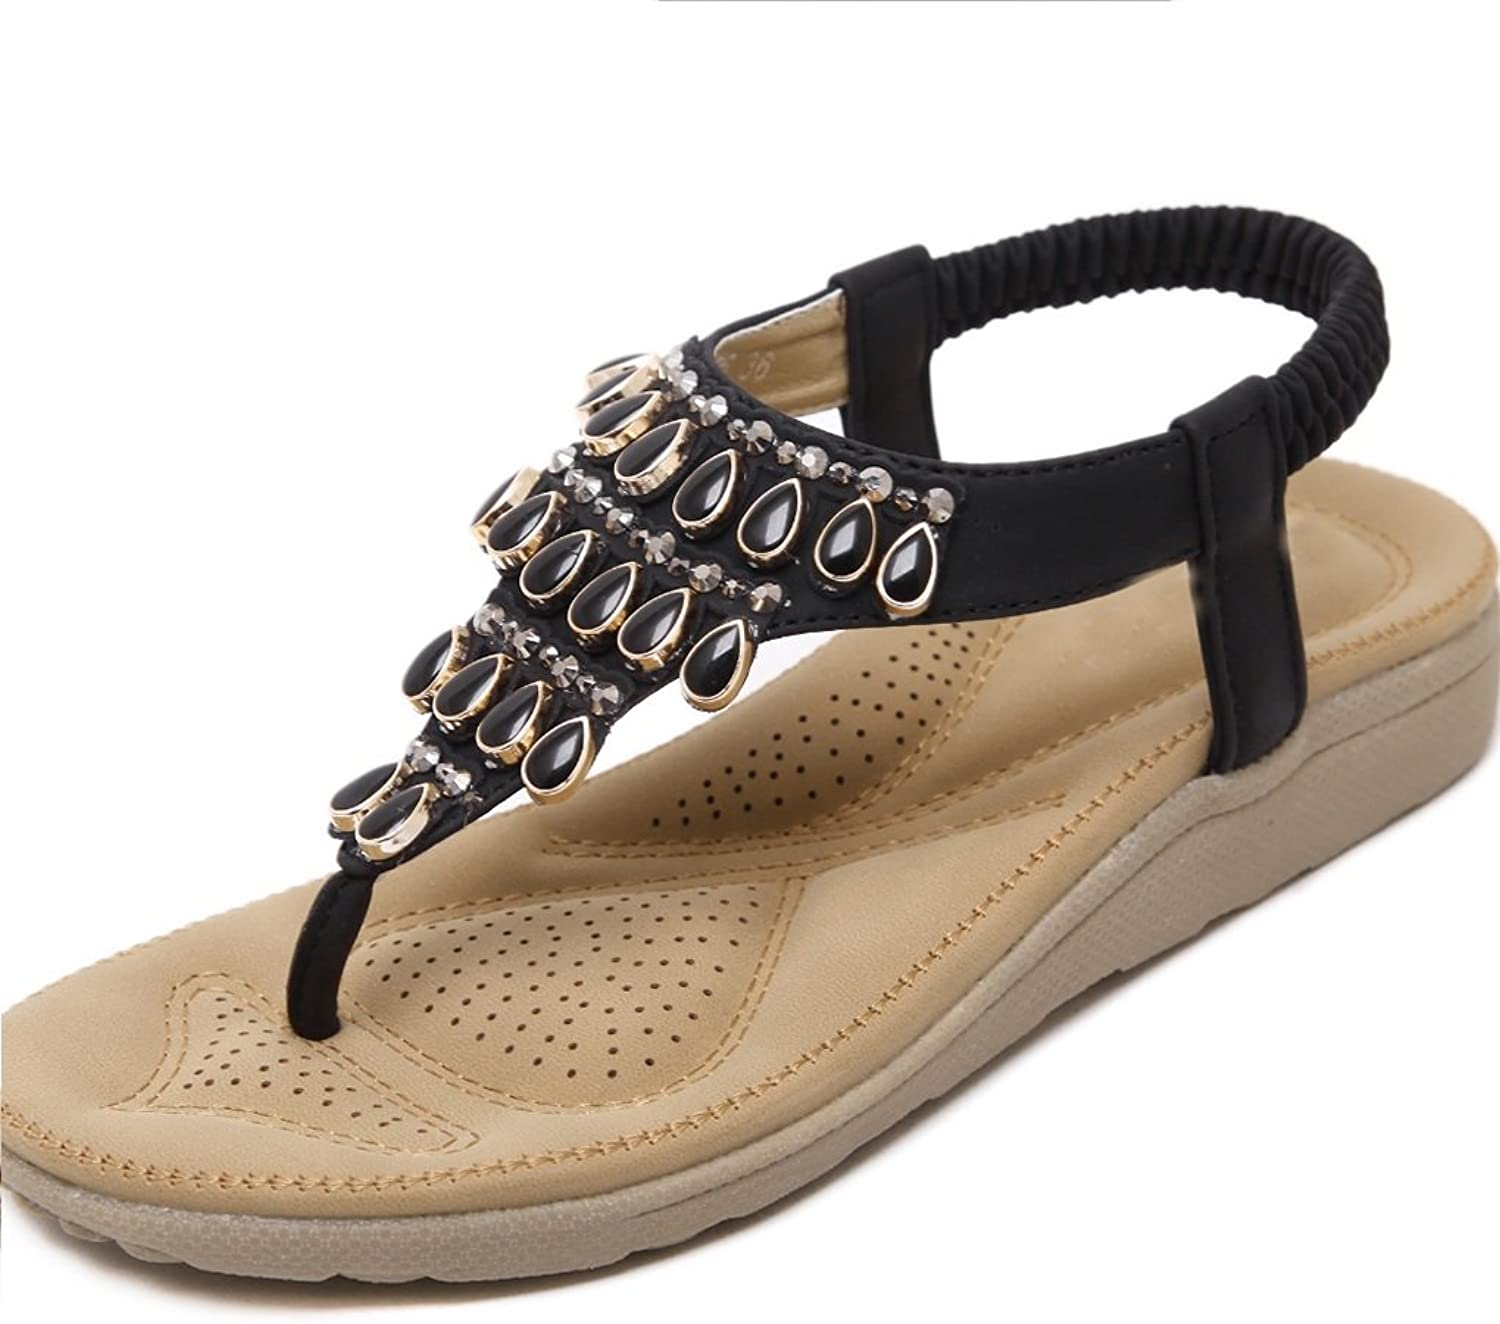 Women's New Korean Female Sandals Bohemian Rhinestone Flat shoes Summer Beach shoes Fashion Indoor and Outdoor Non-Slip Bathrobe Slippers XIAOQI